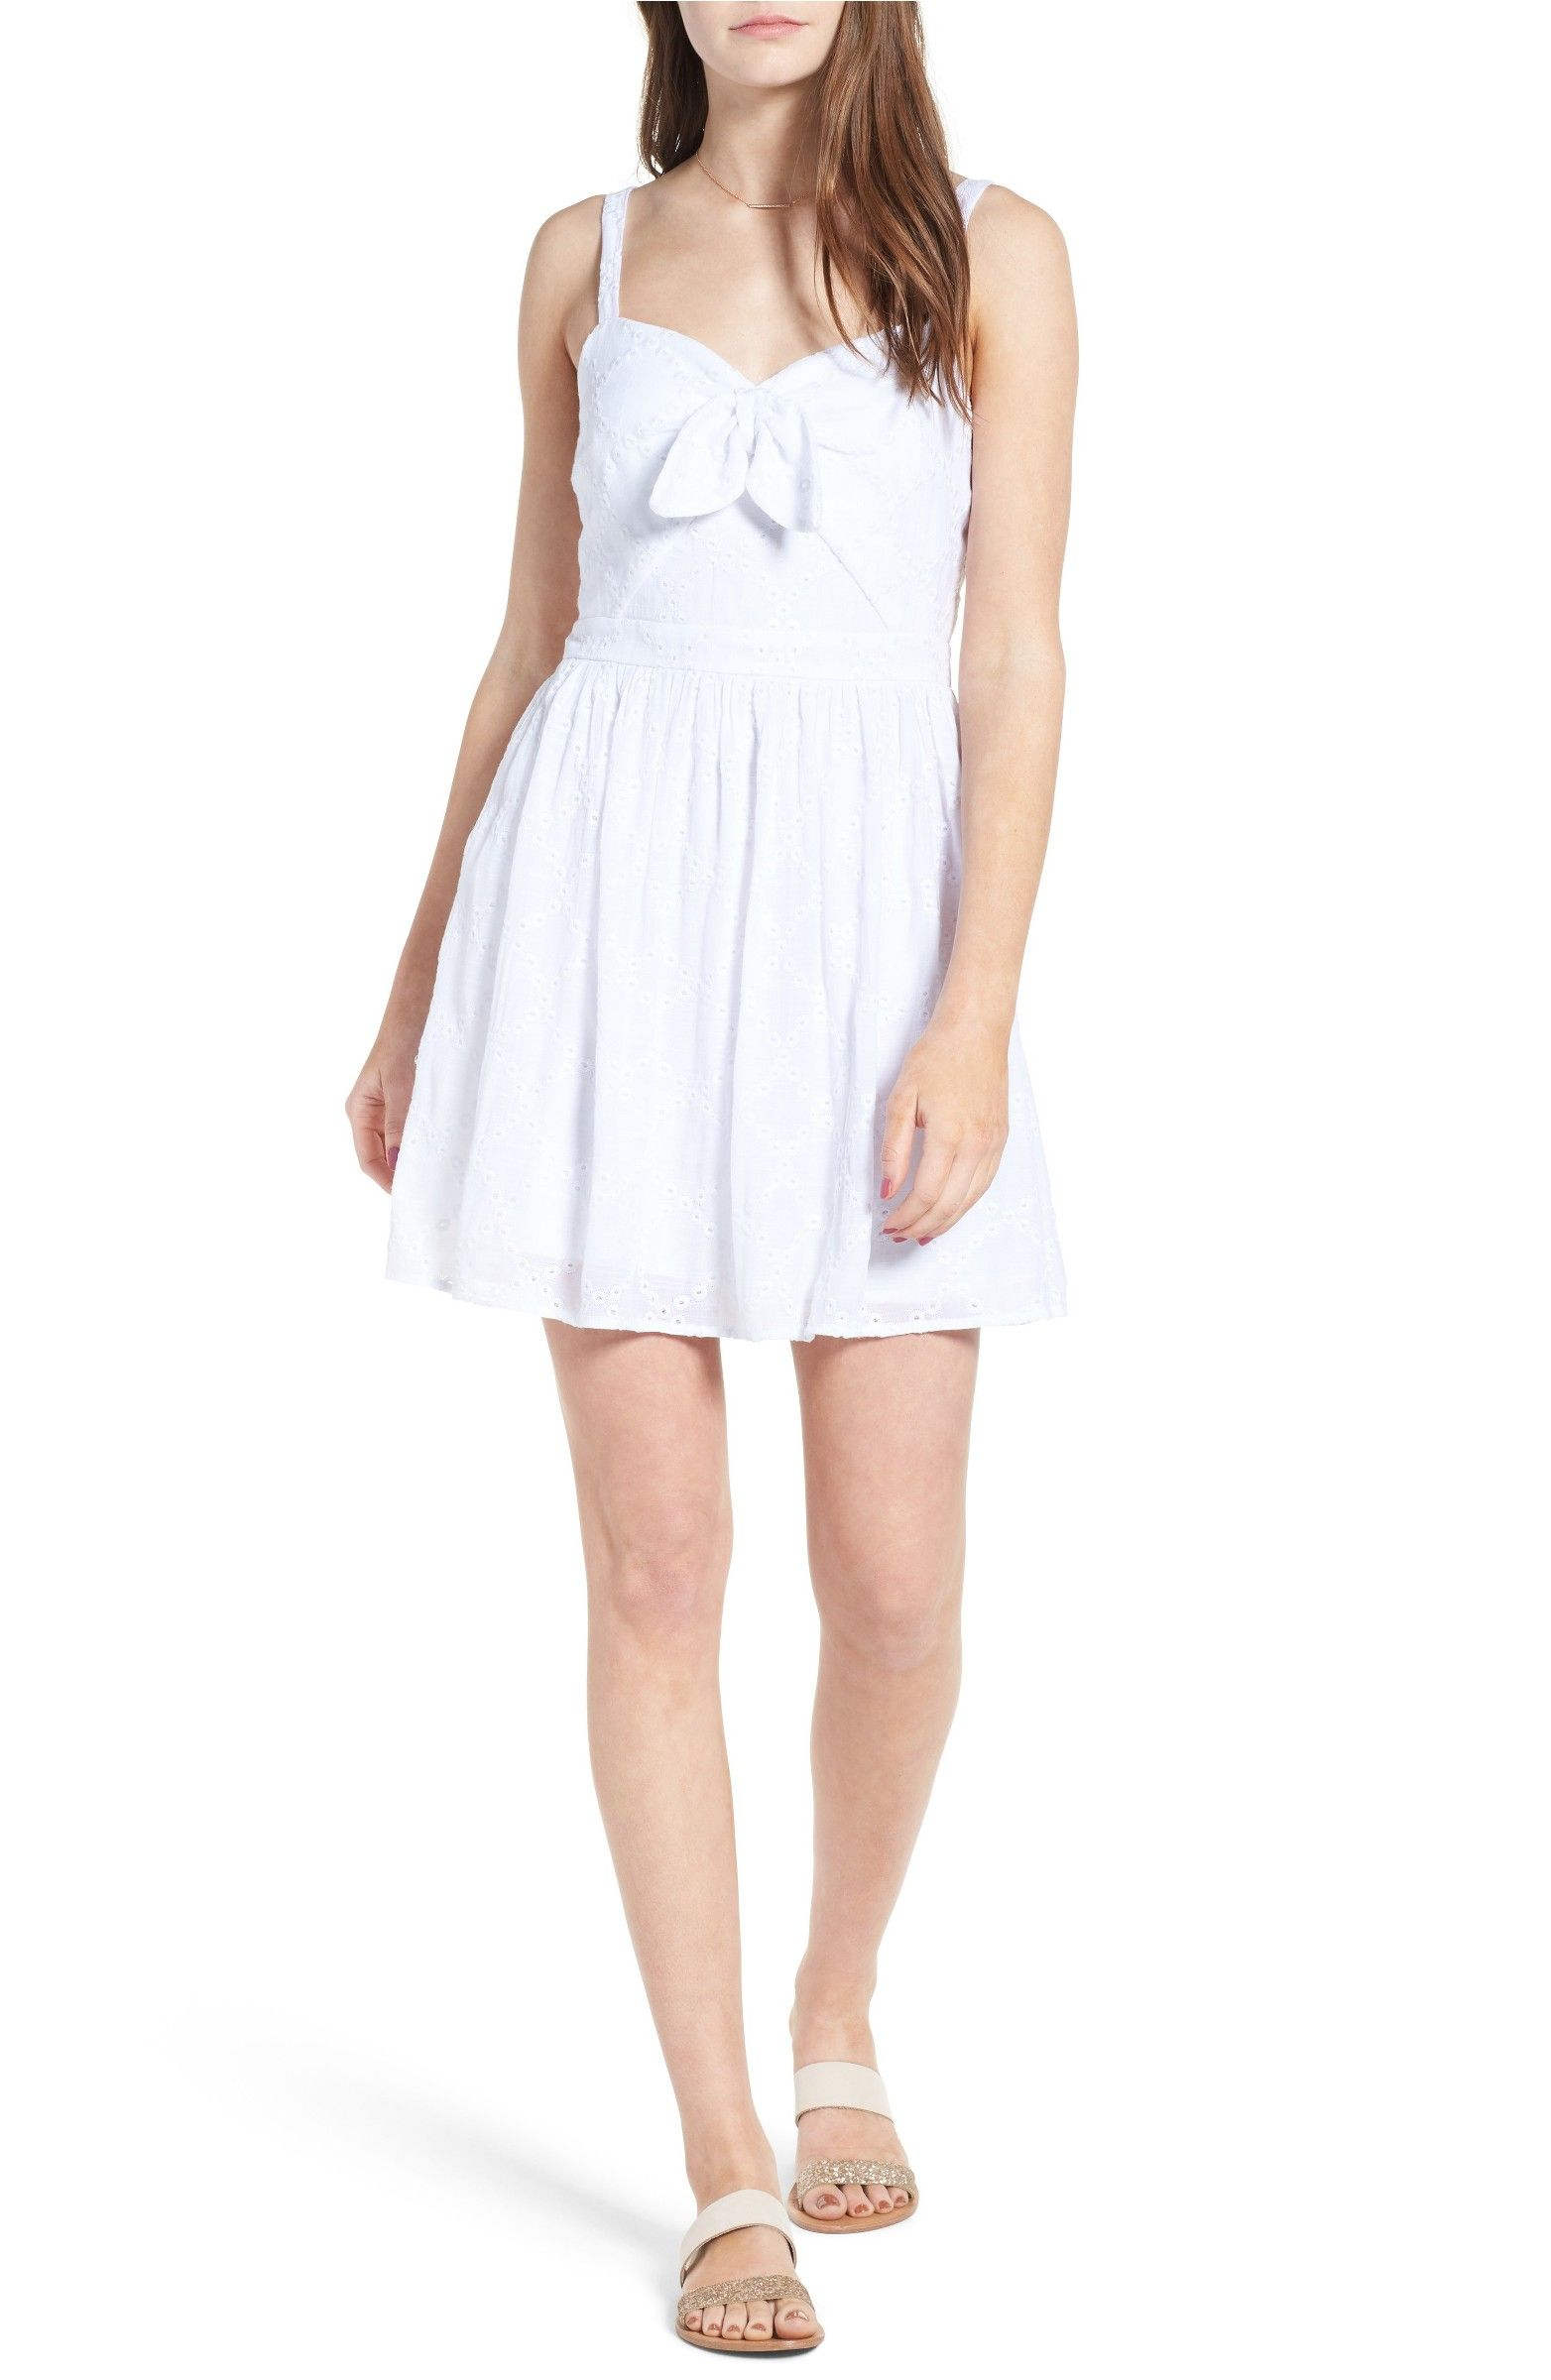 Main image love nickie lew tie front eyelet dress graduation